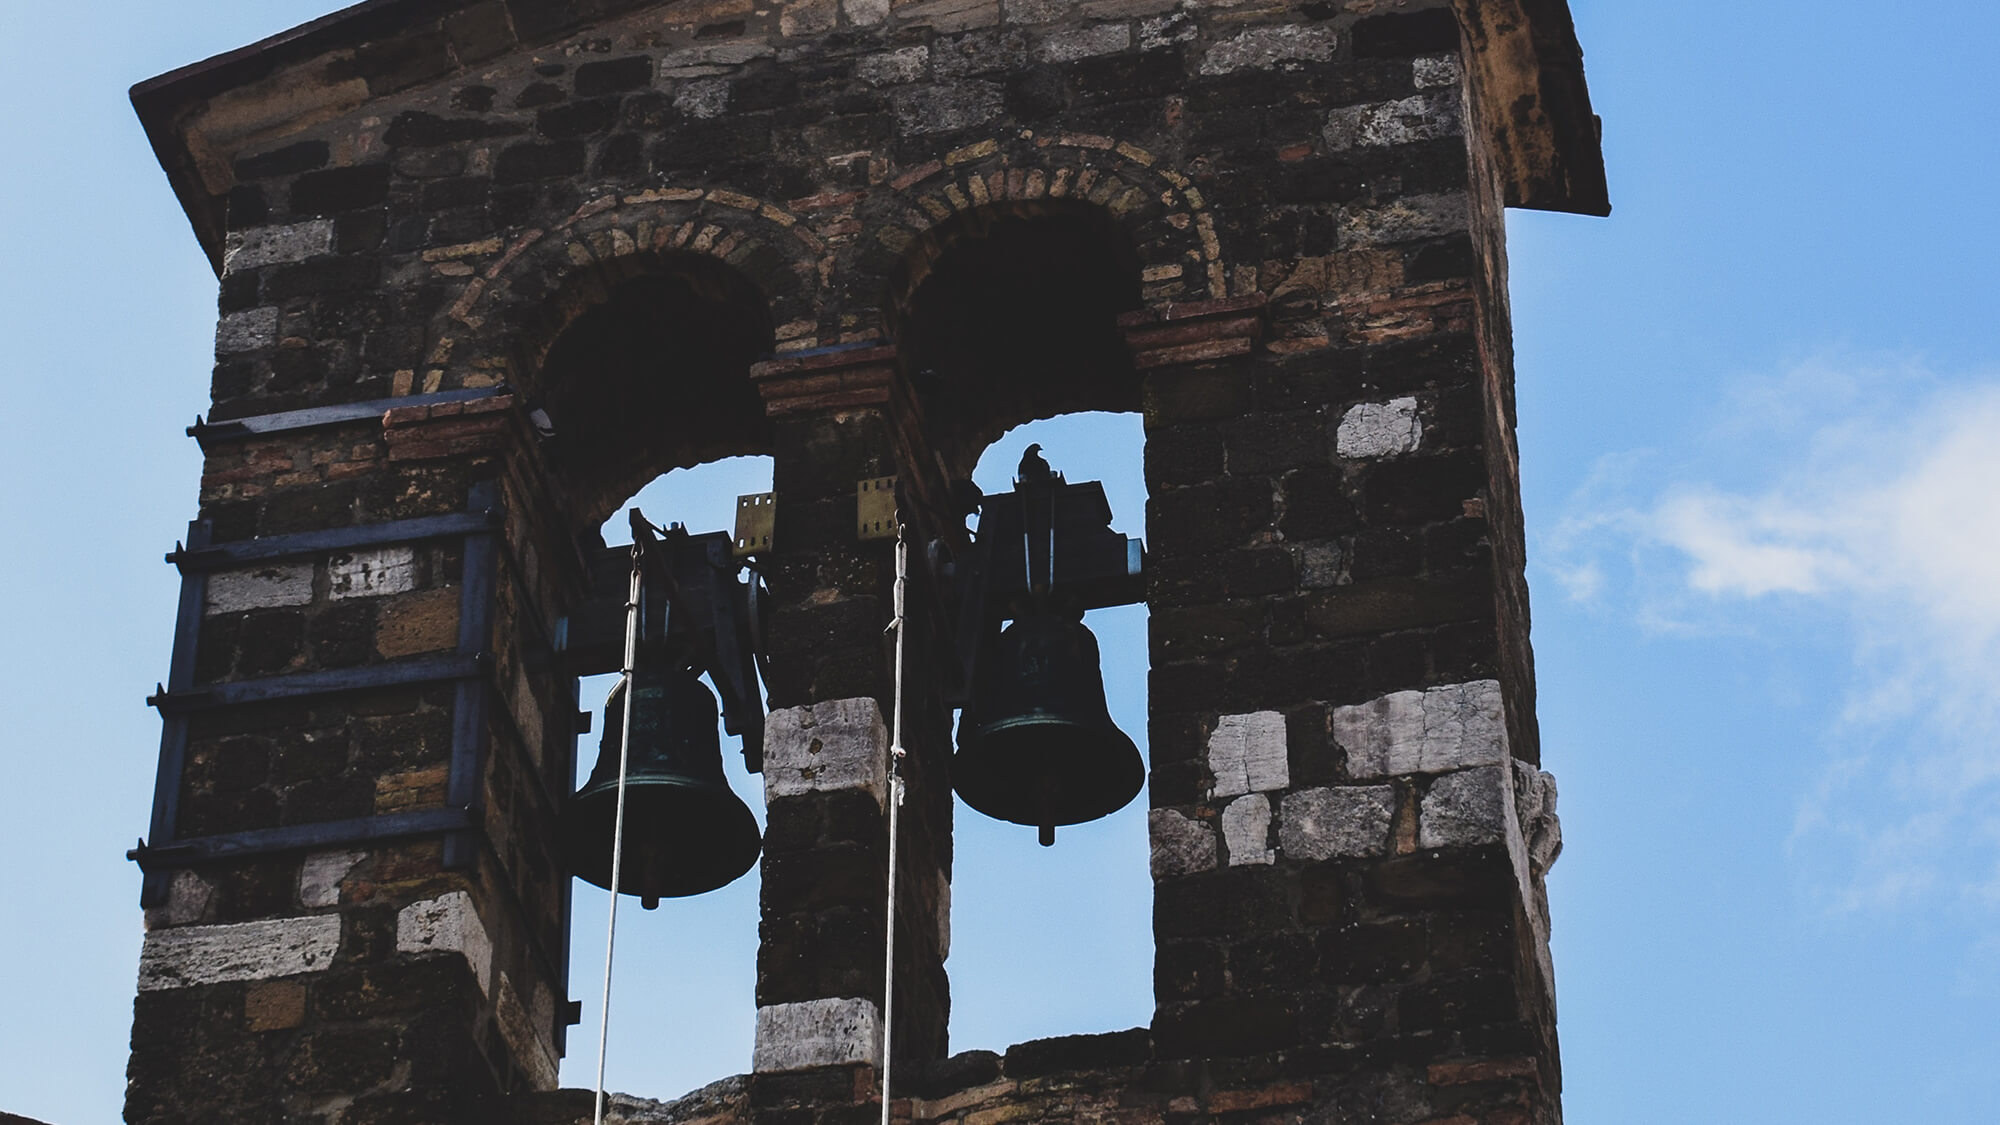 2 church bells on a tower